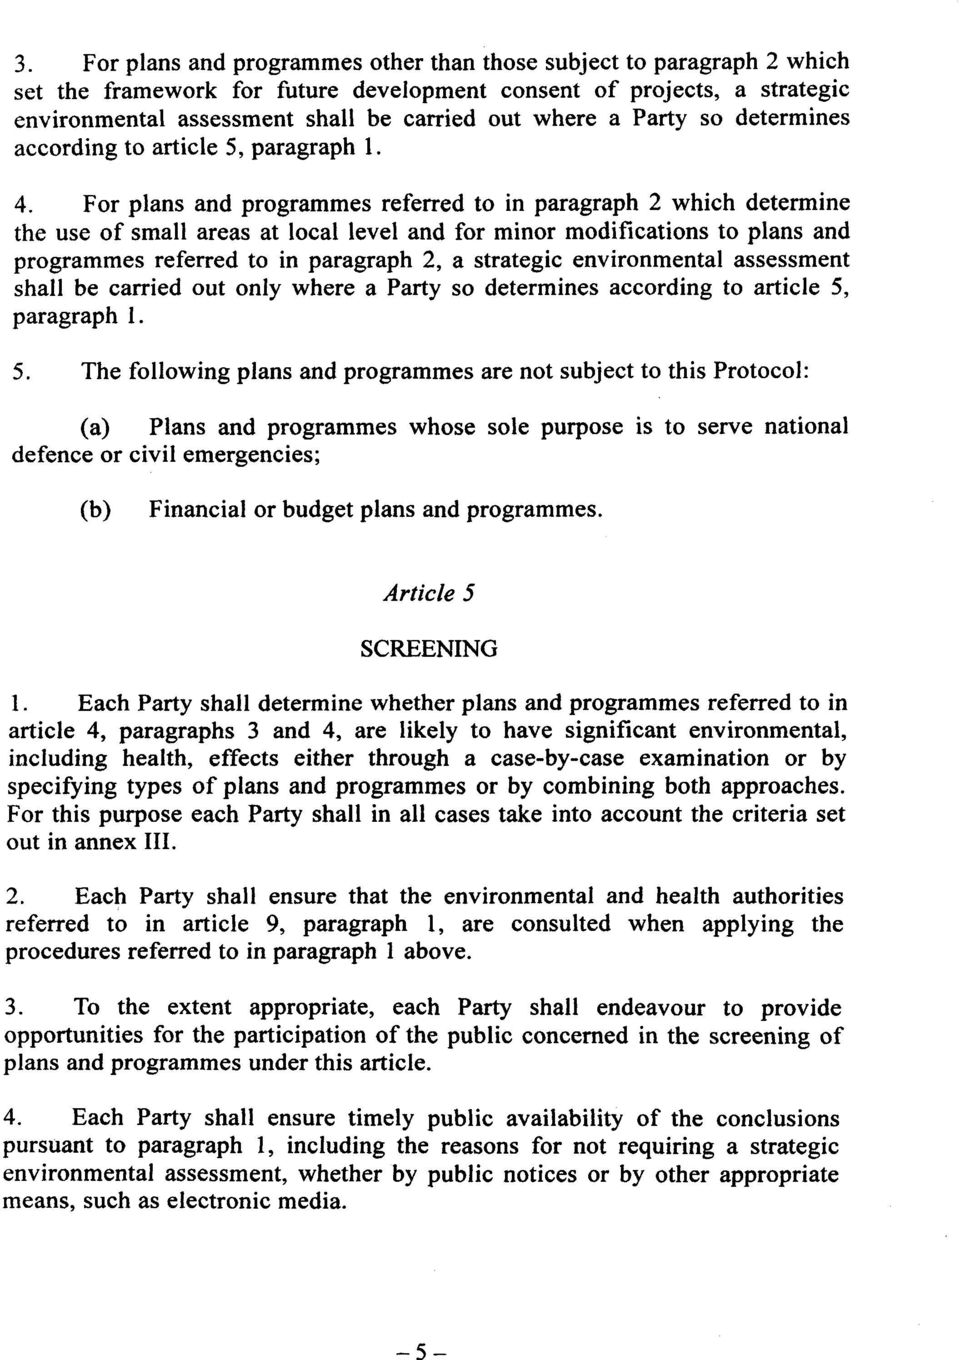 For plans and programmes referred to in paragraph 2 which determine the use of small areas at local level and for minor modifications to plans and programmes referred to in paragraph 2, a strategic